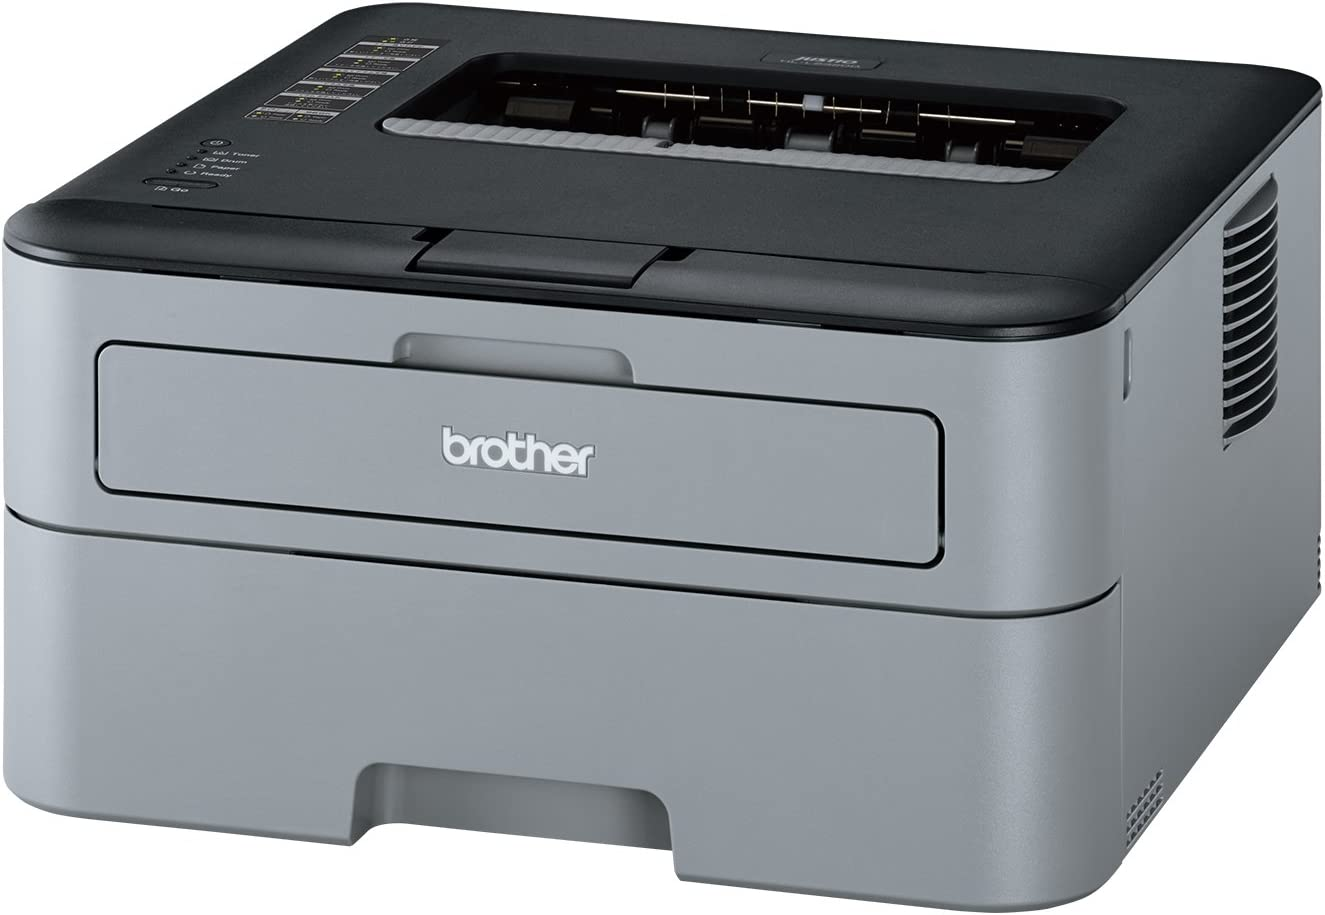 brother レーザープリンター A4 モノクロ JUSTIO HL-L2320D